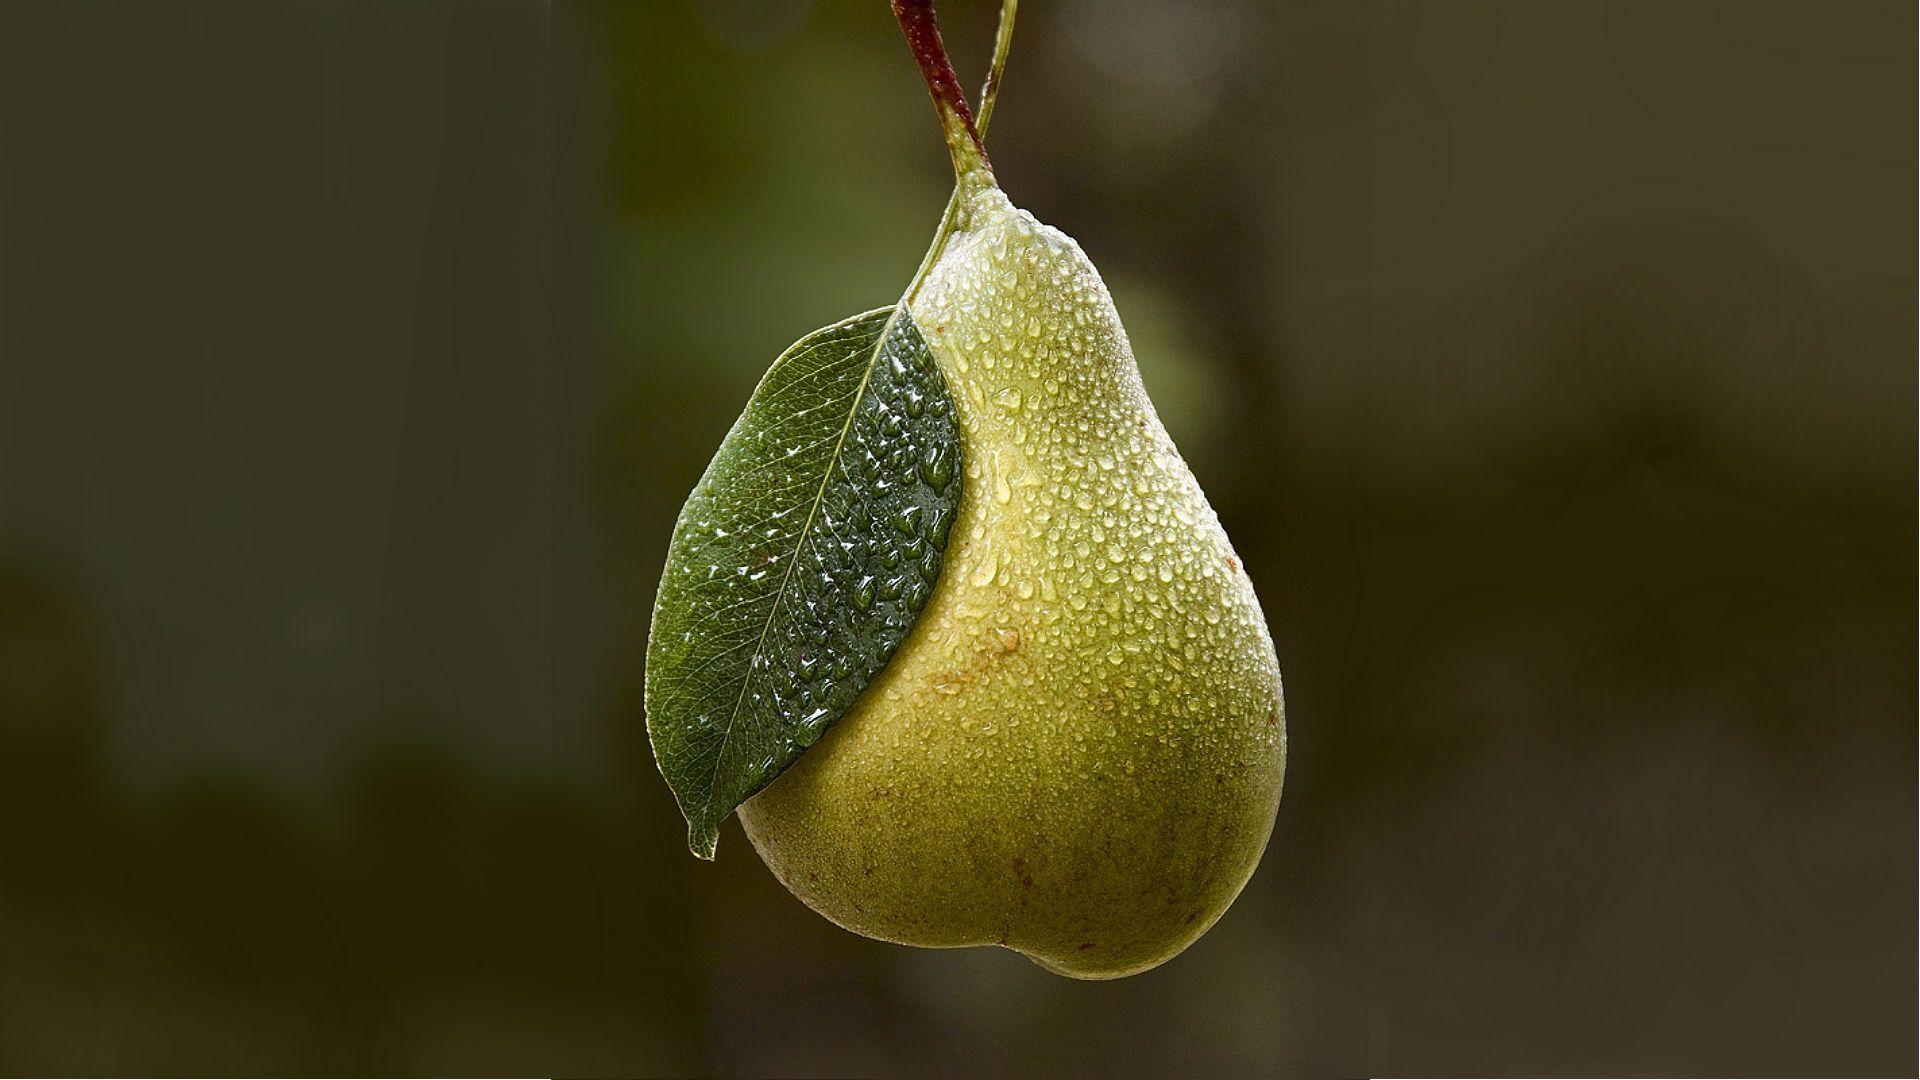 Download wallpaper background, pear, dew free desktop wallpaper in ...